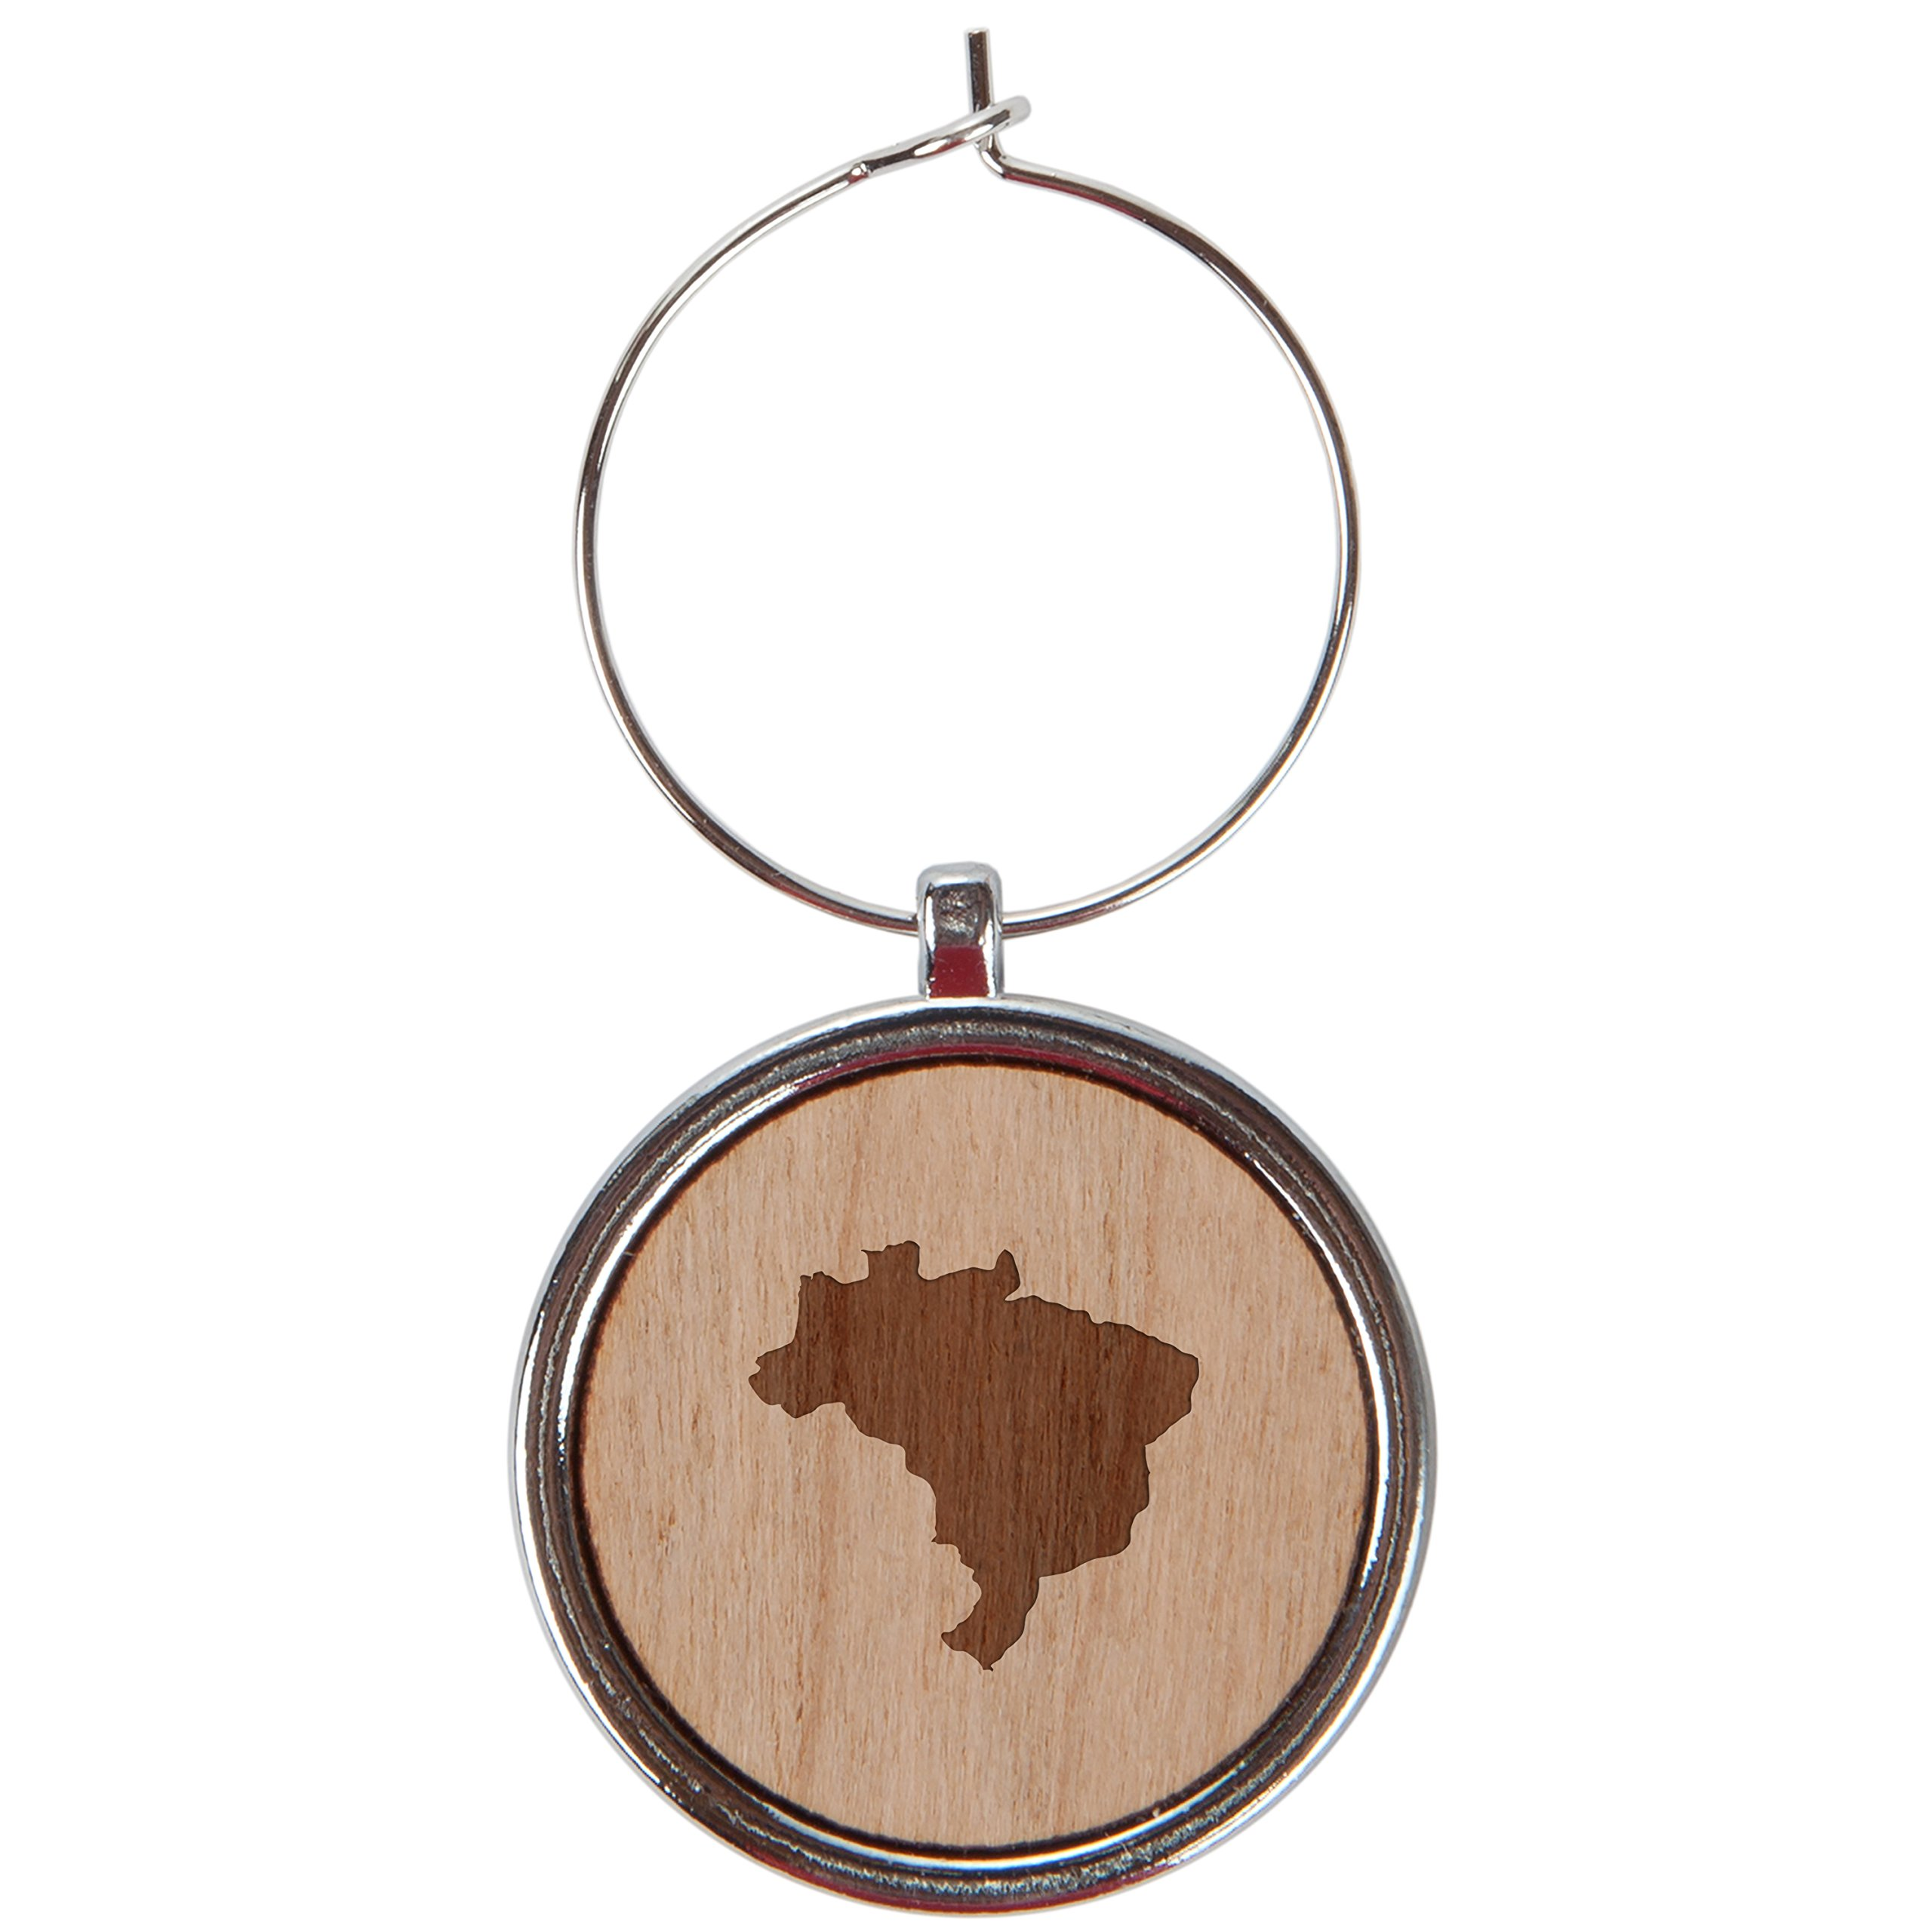 Brazil Wood Wine Glass Charms Set Of 6-1 Inch Laser Engraved Wine Glass Charms For Stemmed Wine Glasses - Wine Glass Charm Gift